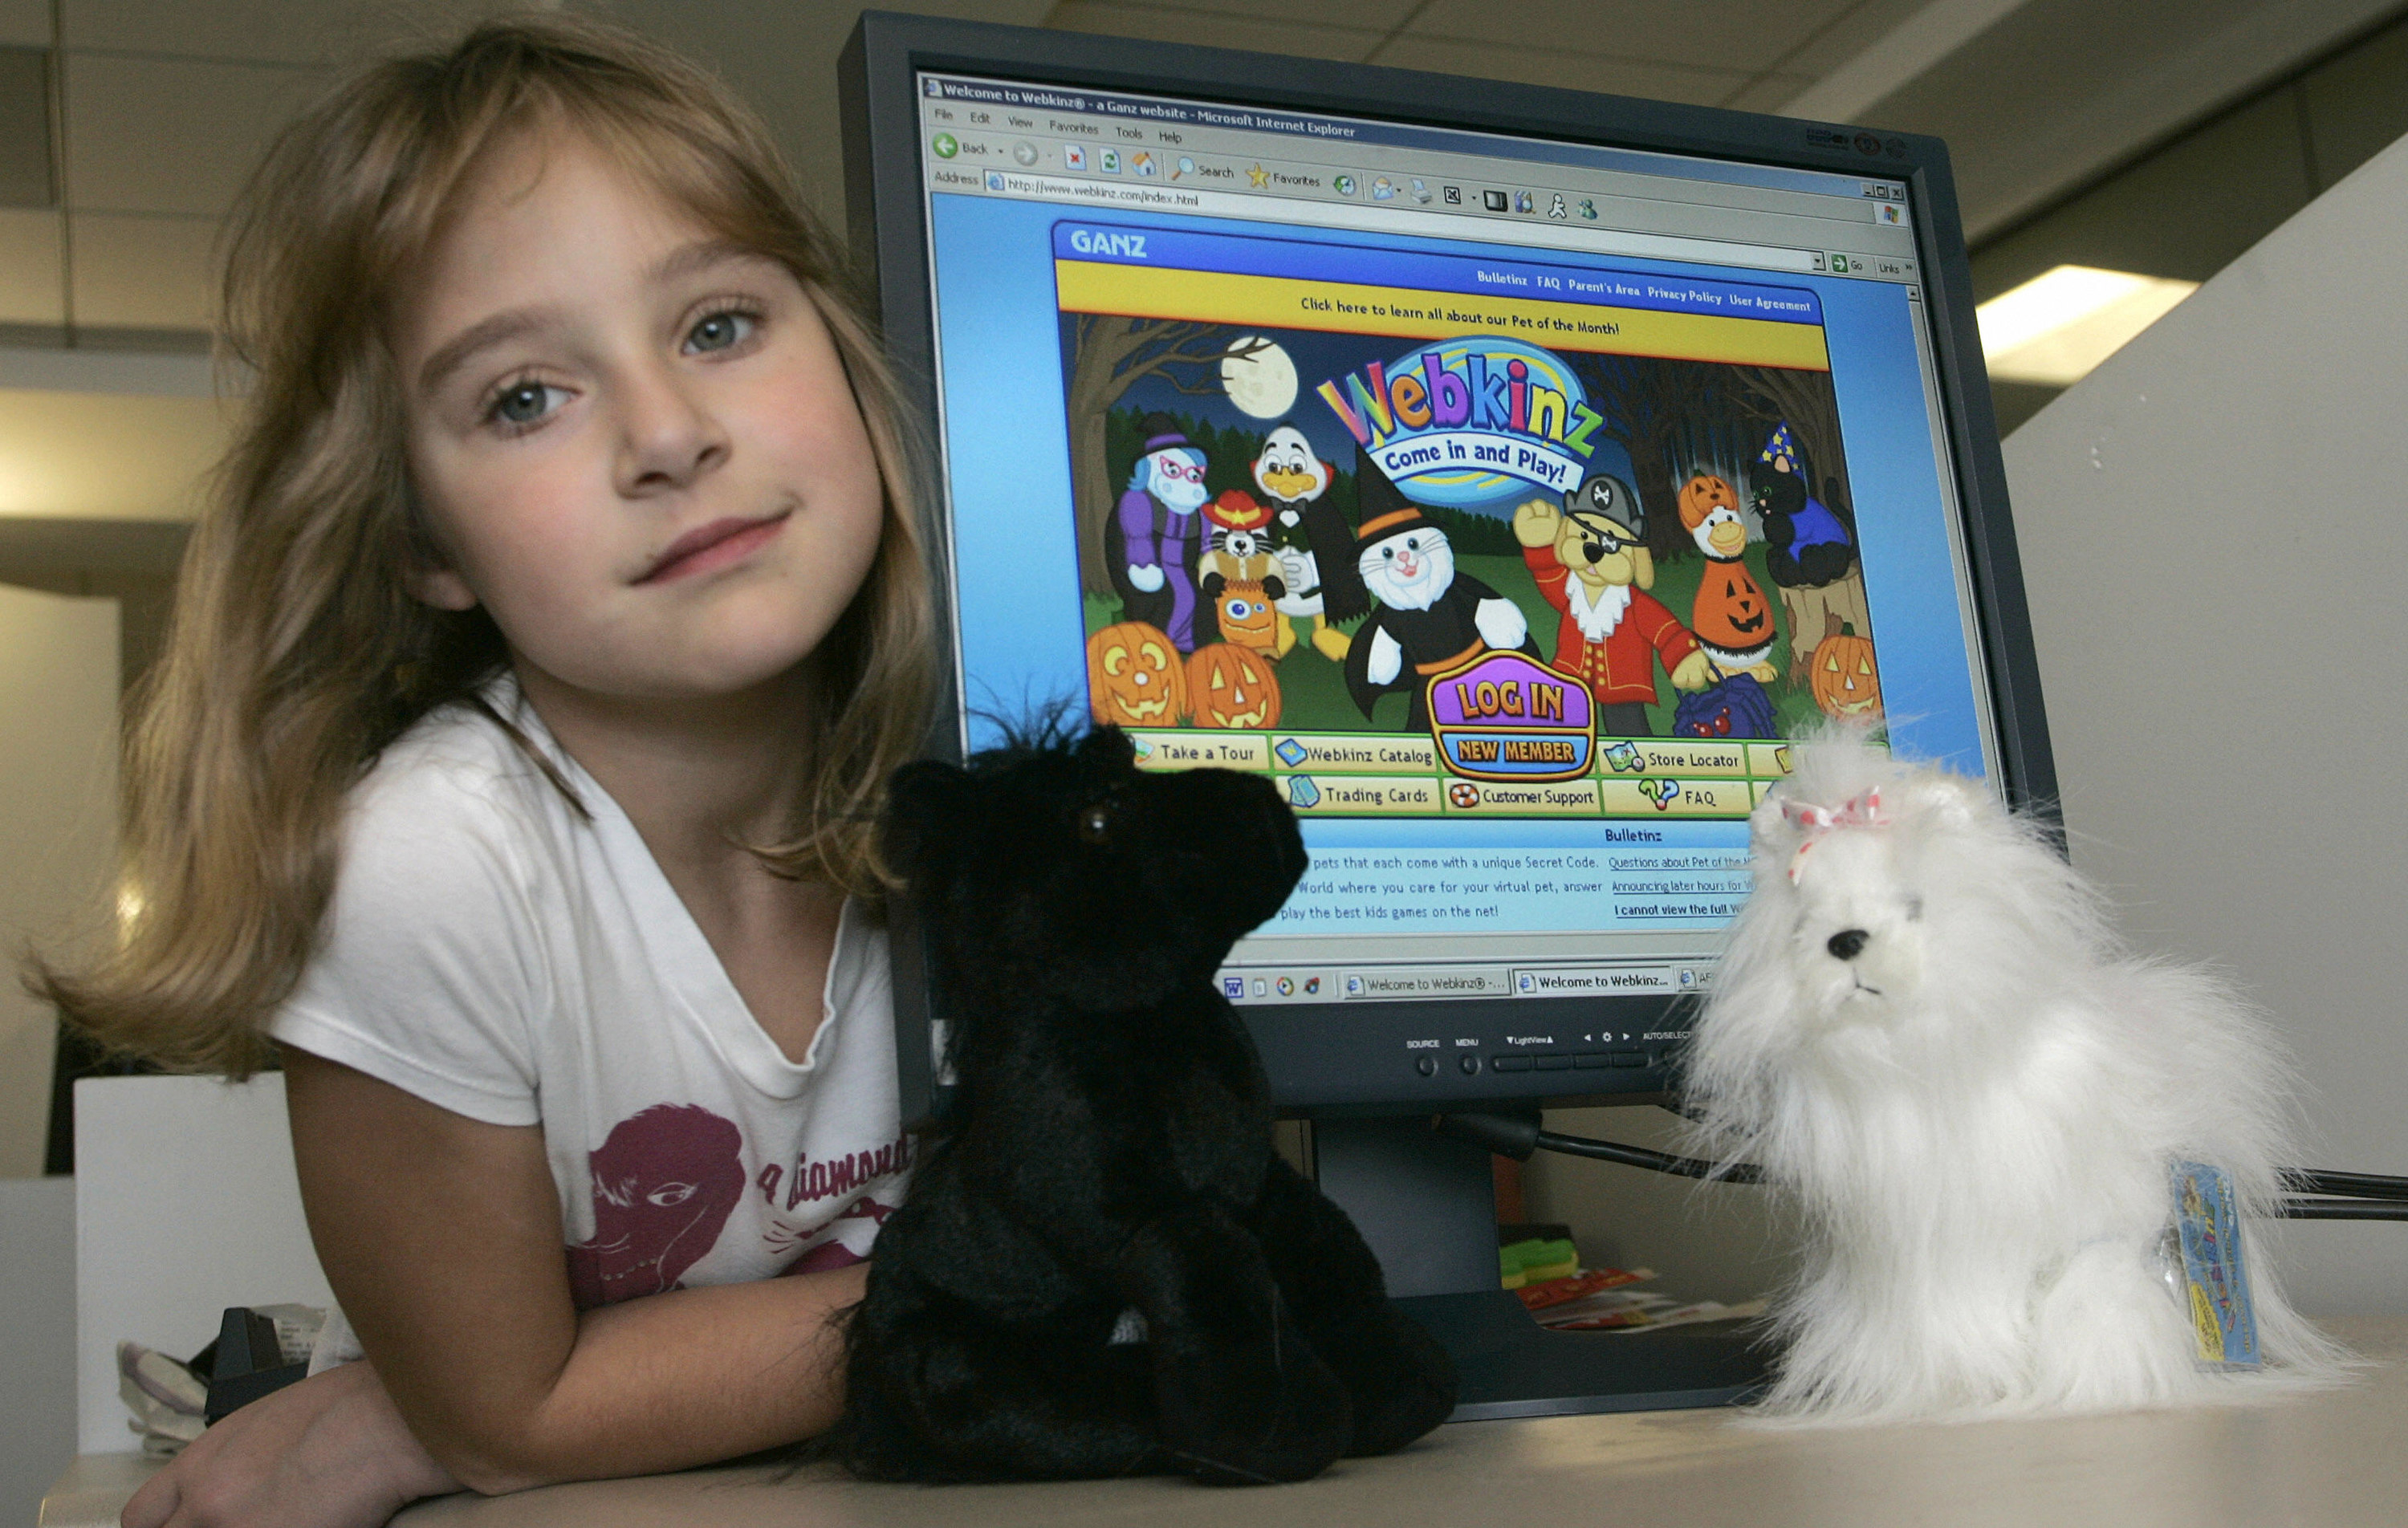 A young girl poses next to a computer showing the Webkinz website and two stuffed Webkinz